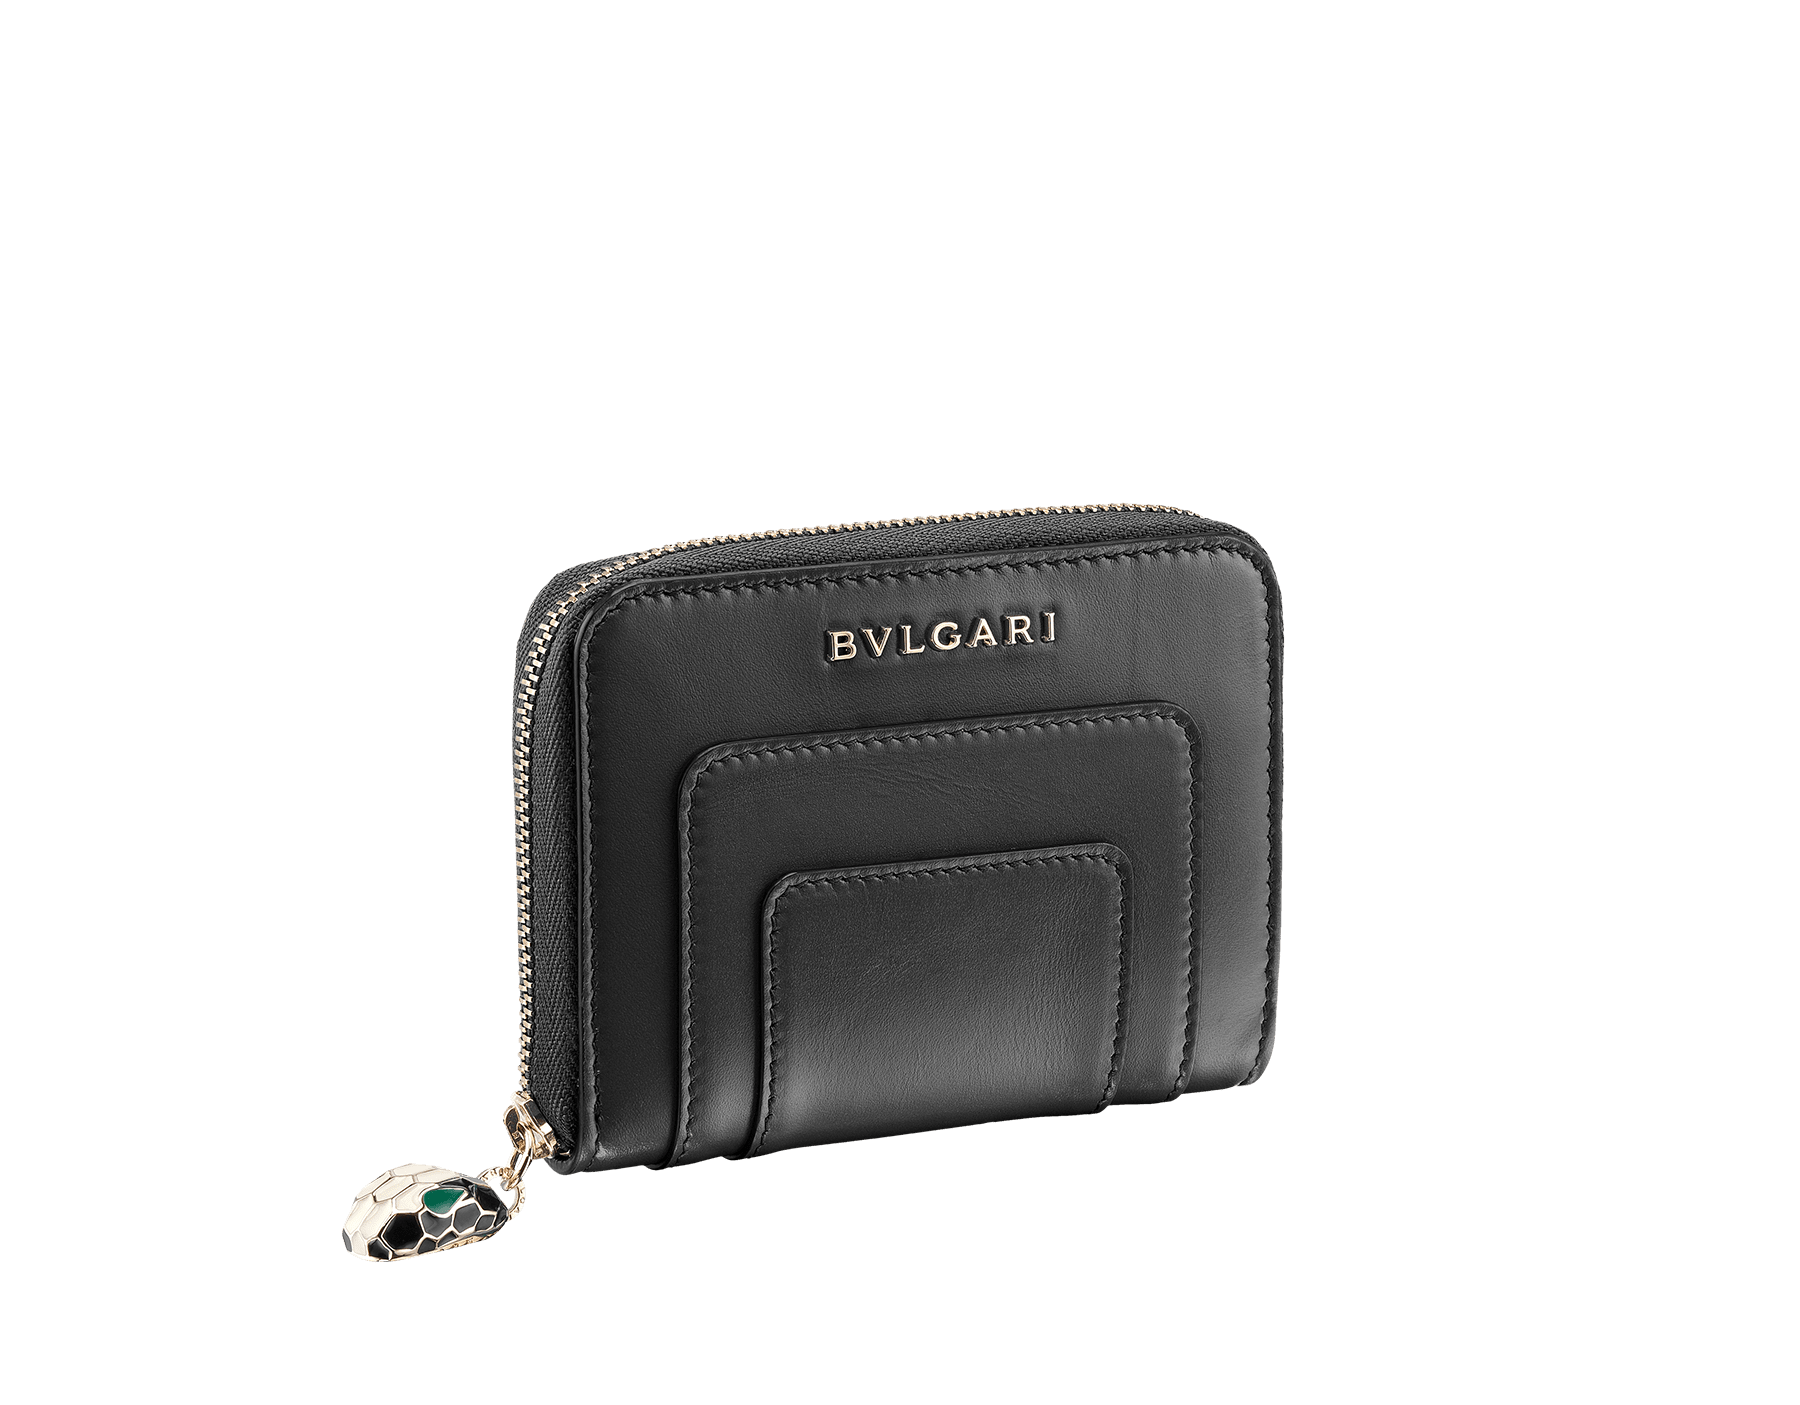 Mini zipped Wallet in black and emerald green calf leather with malachite nappa lining. Brass light gold plated hardware. 280375 image 1